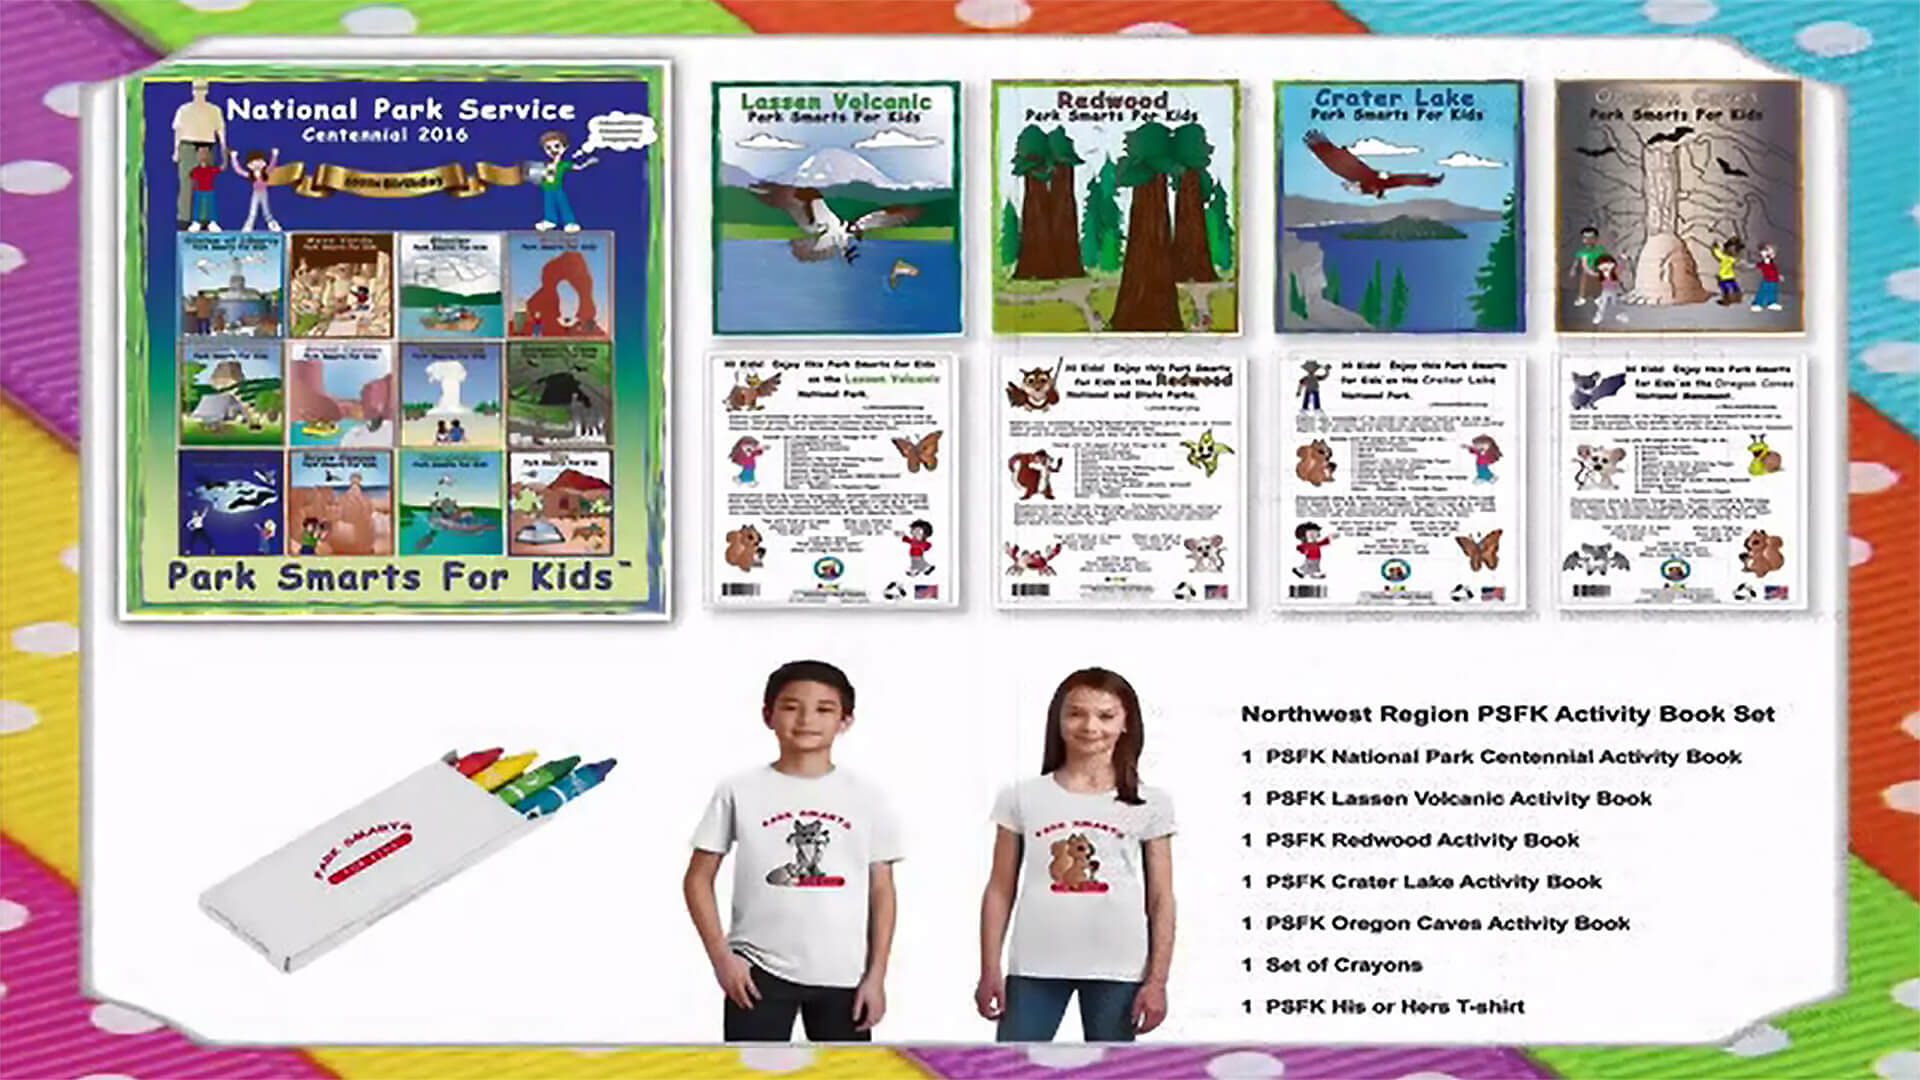 Park Smarts for Kids product image